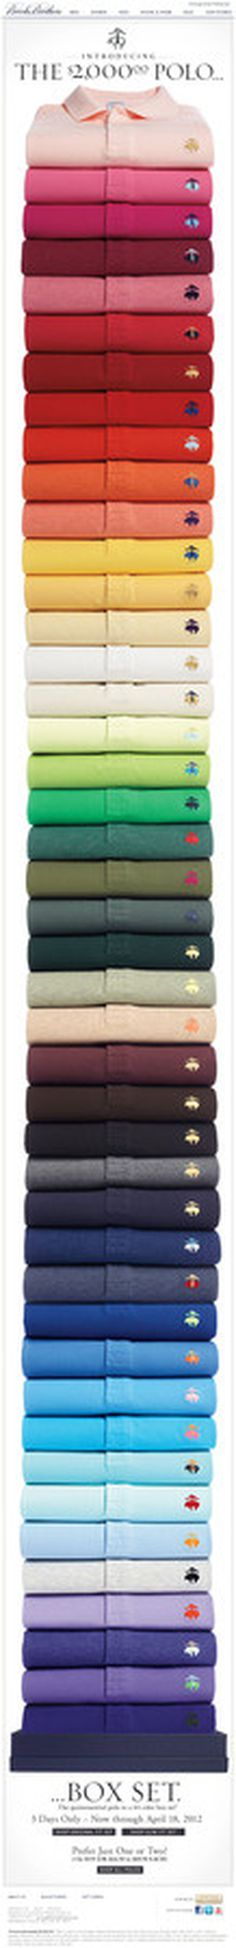 Brook Brothers Polos #brooksbros #colors #polo